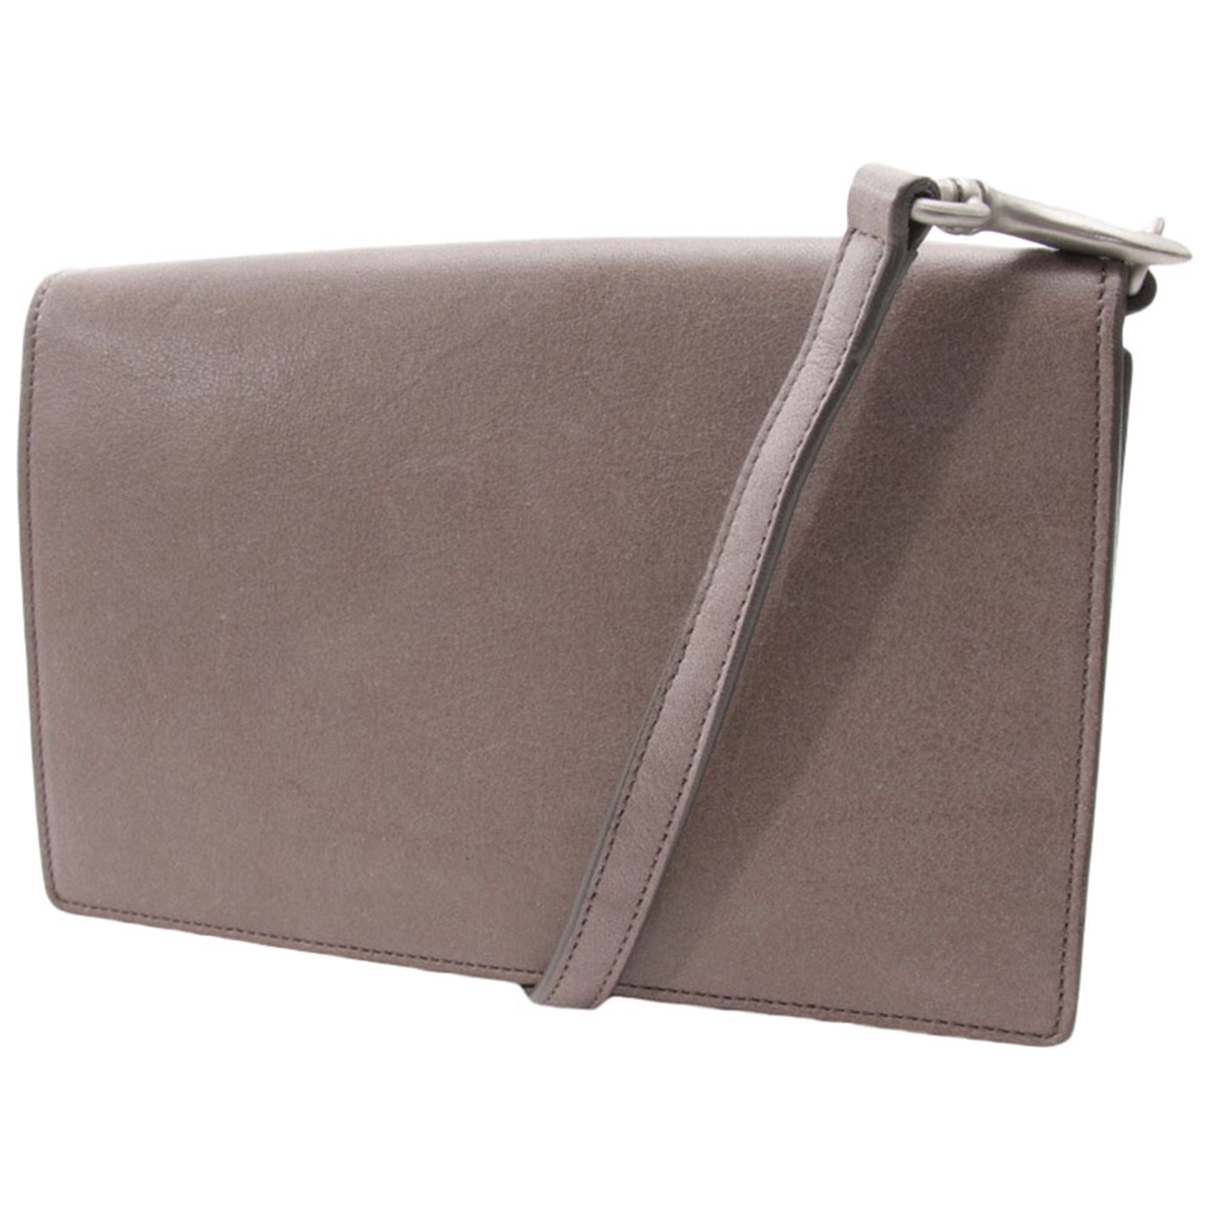 Rick Owens \N Brown Leather Clutch bag for Women \N